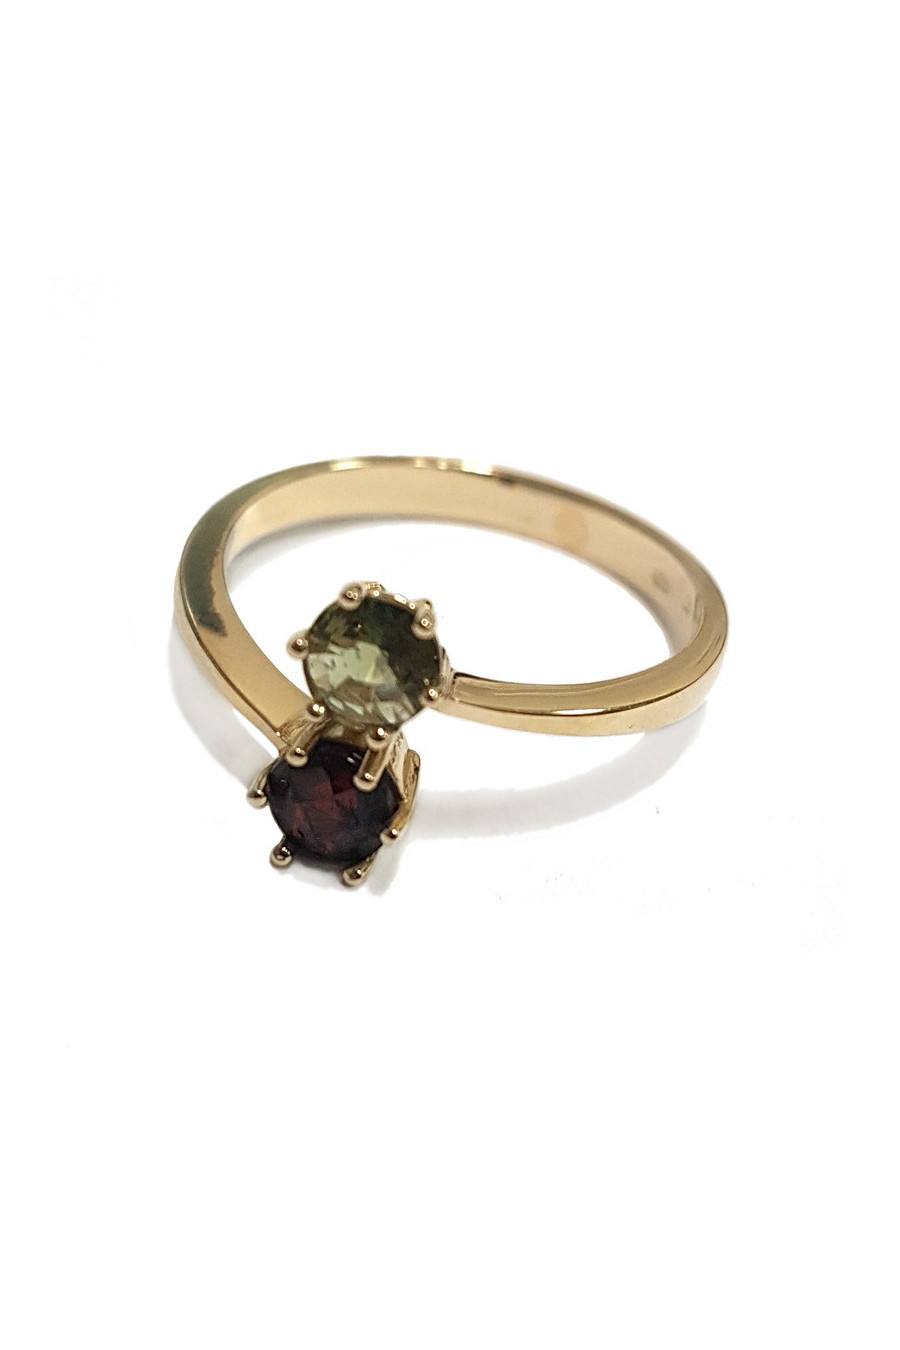 Gold ring with garnet and moldavite